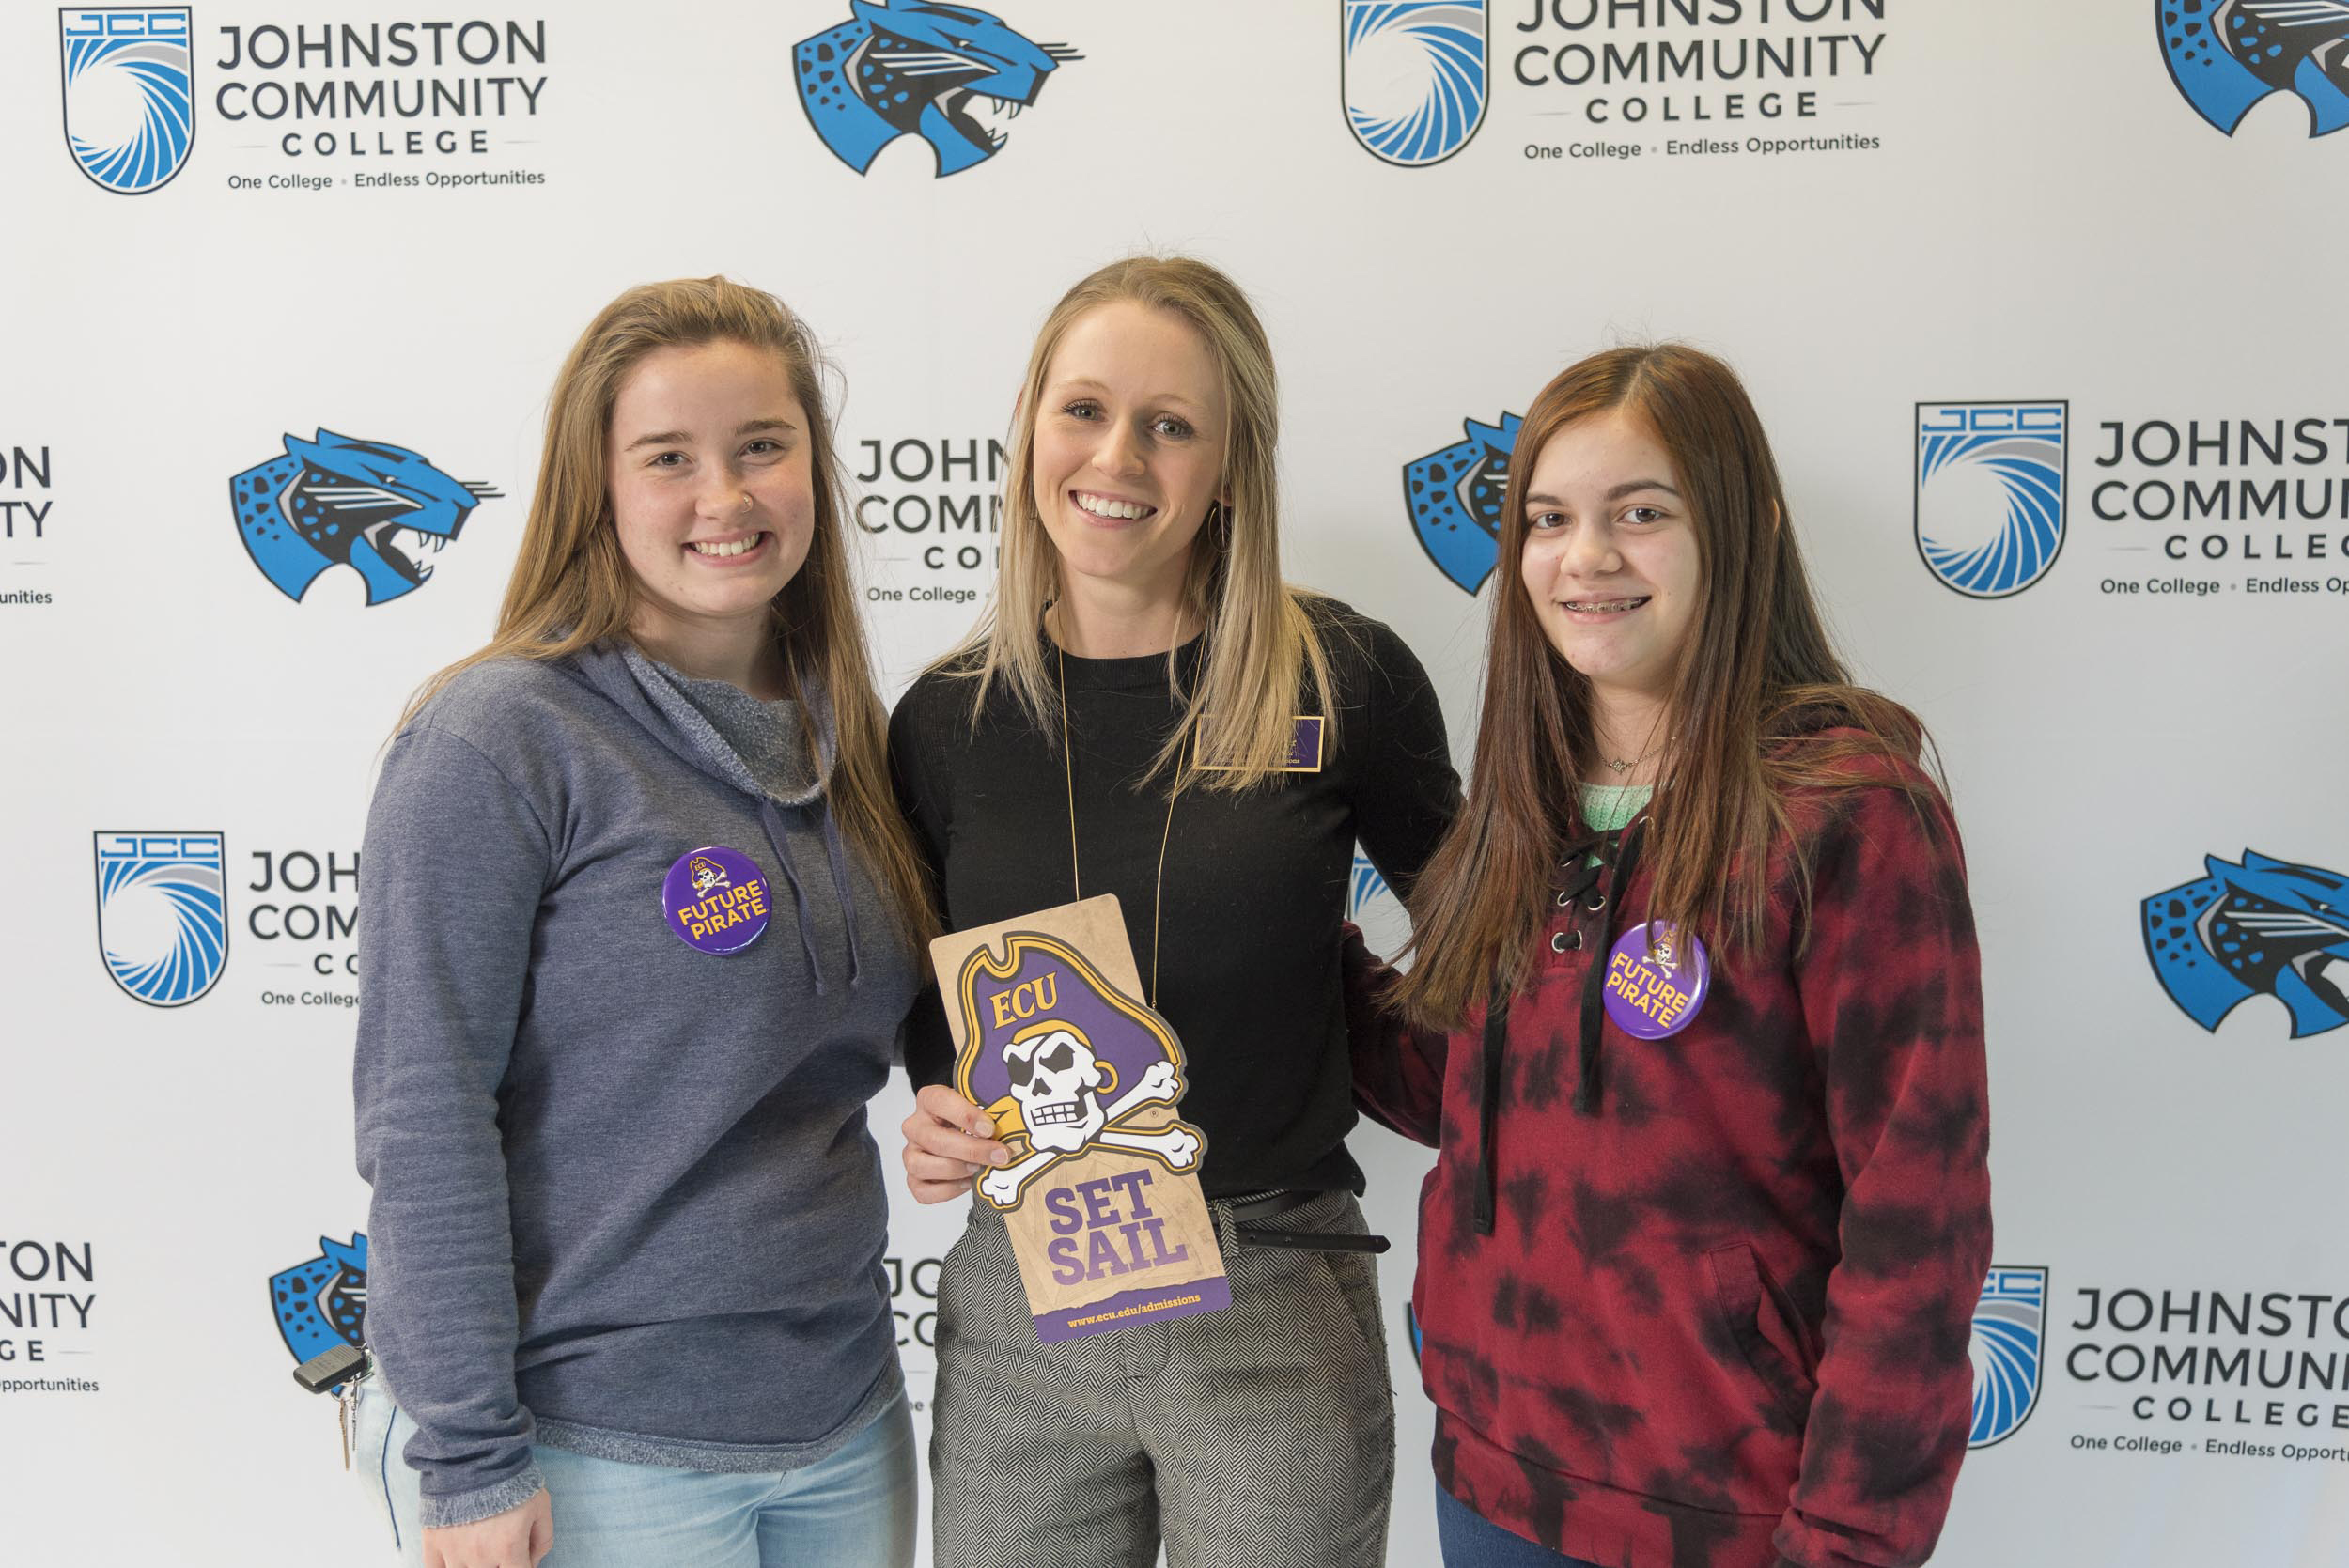 Leeann Simons of Middlesex, left, and April Wagner of Clayton are two of the 28 future Pirates in the new dual admissions programs with JCC and ECU. They are pictured with Sydney Luyster, an ECU admissions counselor.